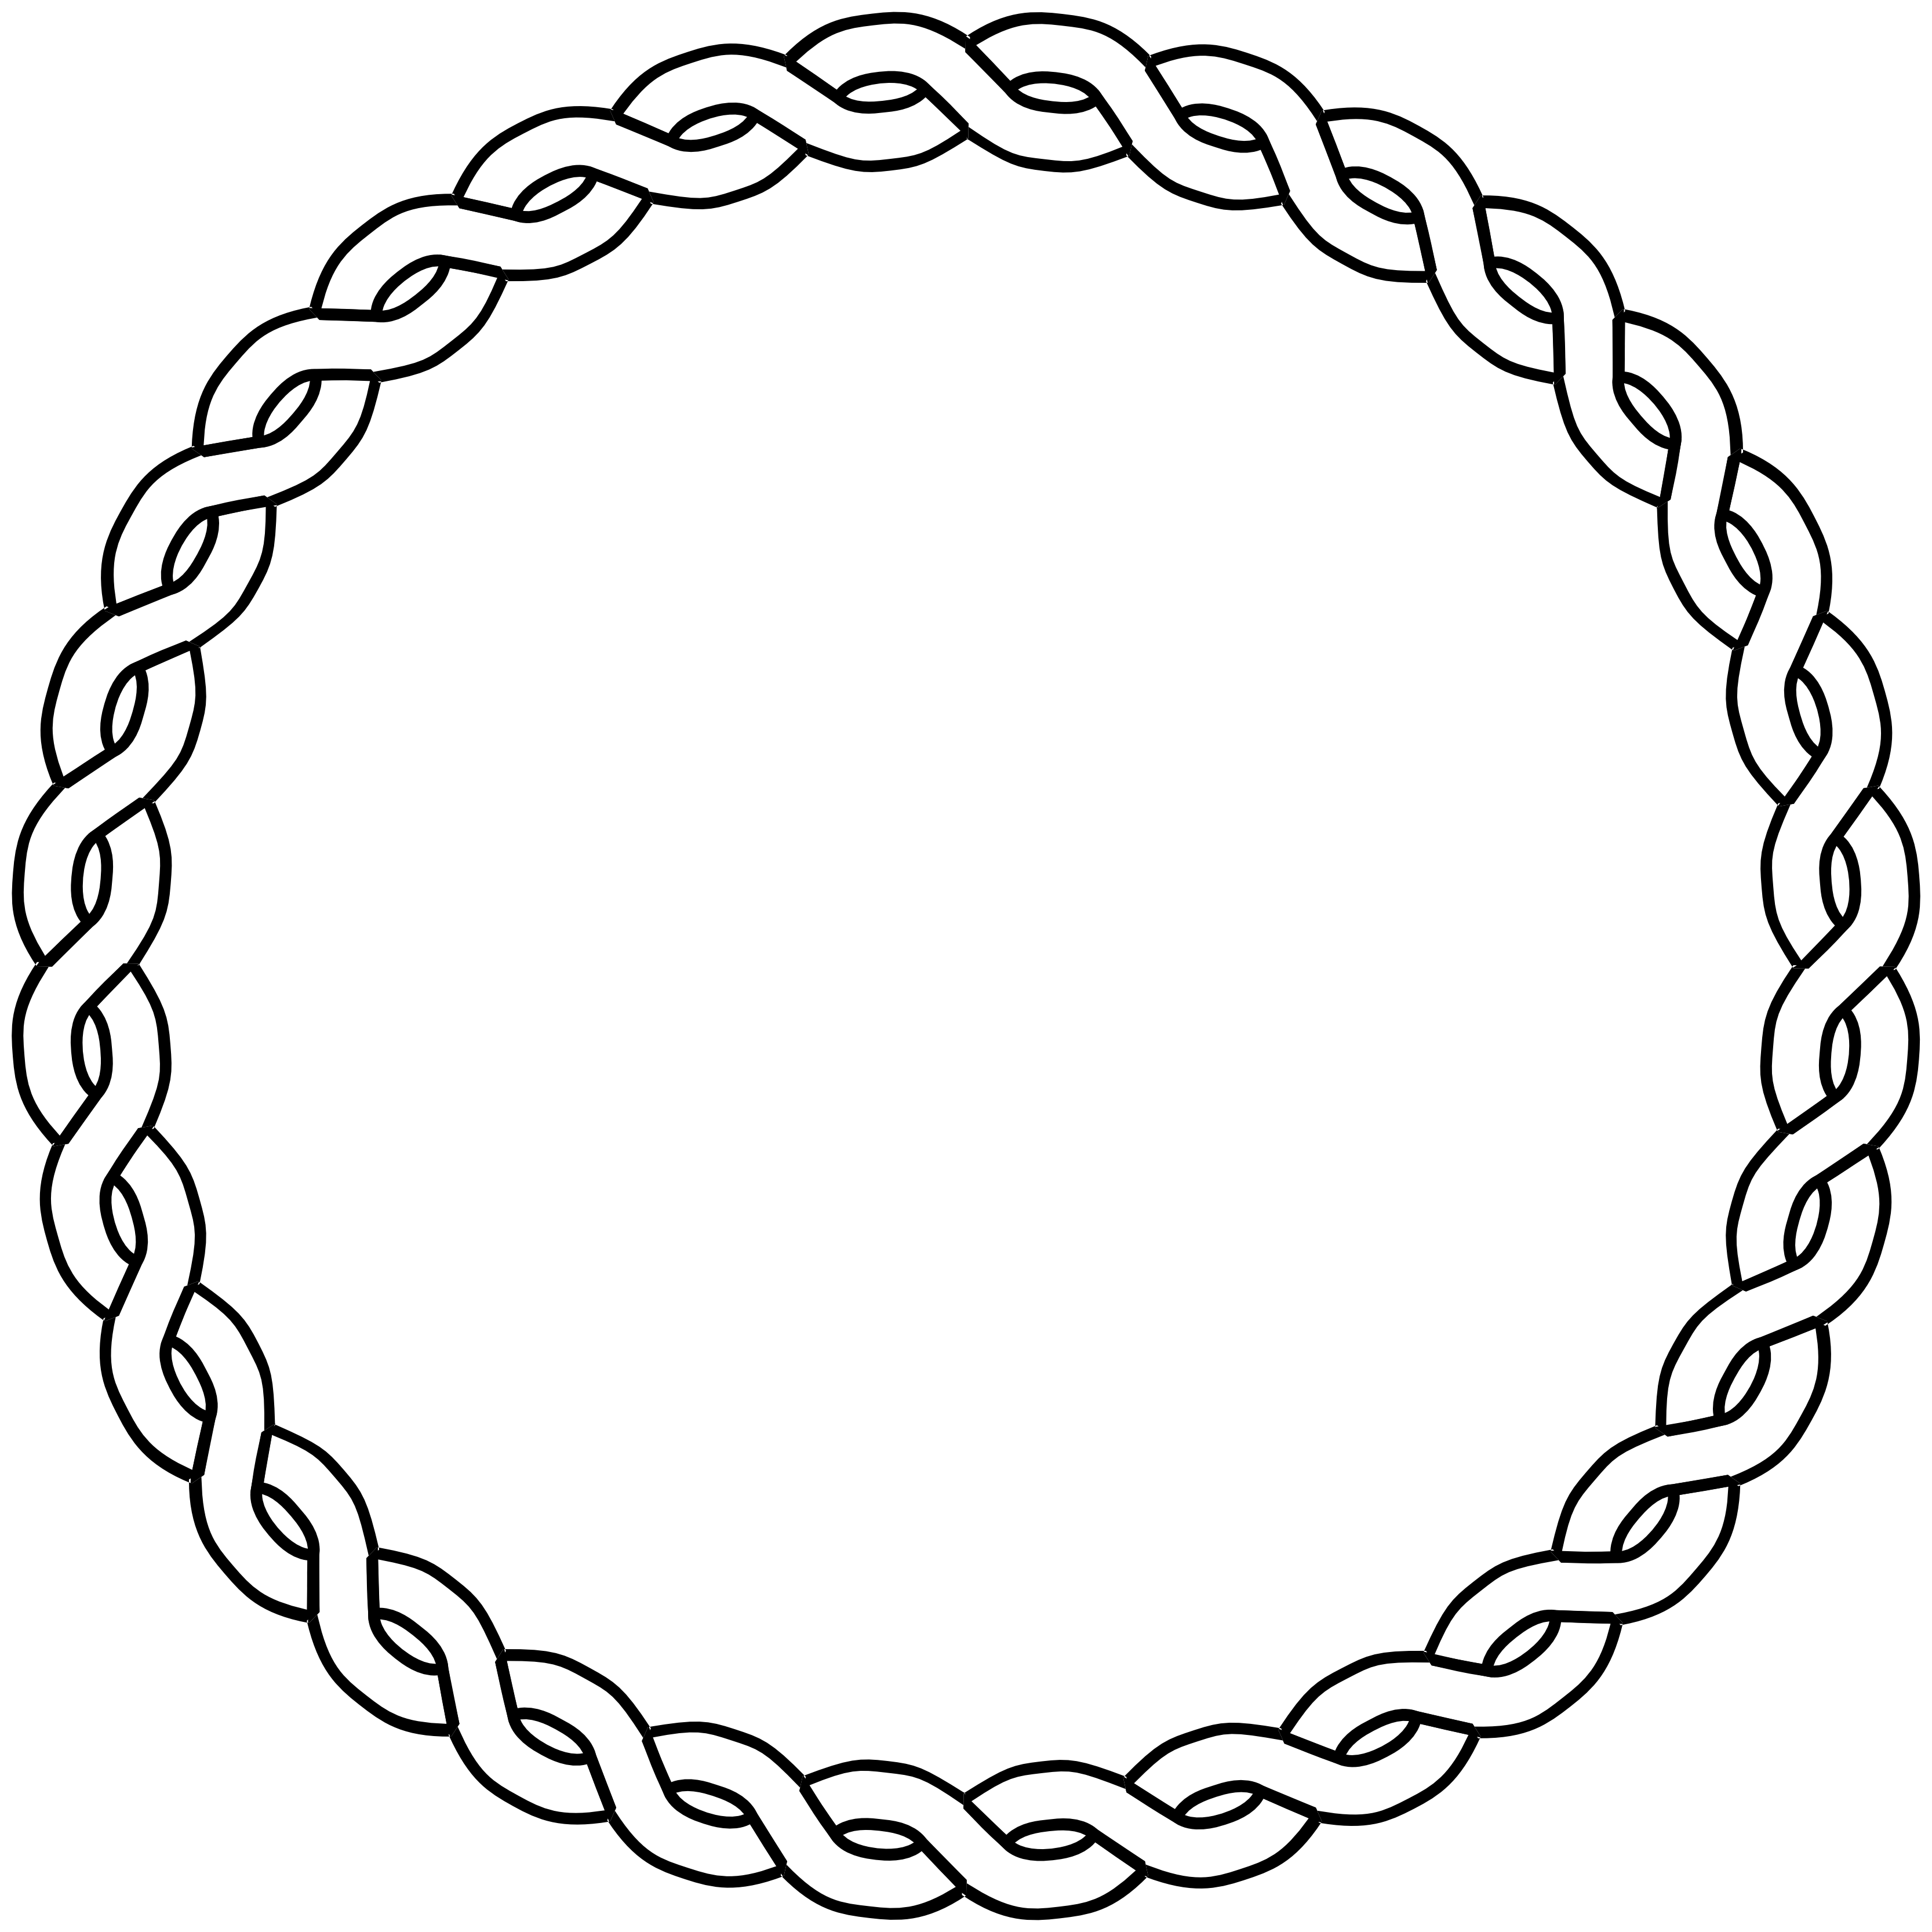 Clipart anchor circle. Rope border black white